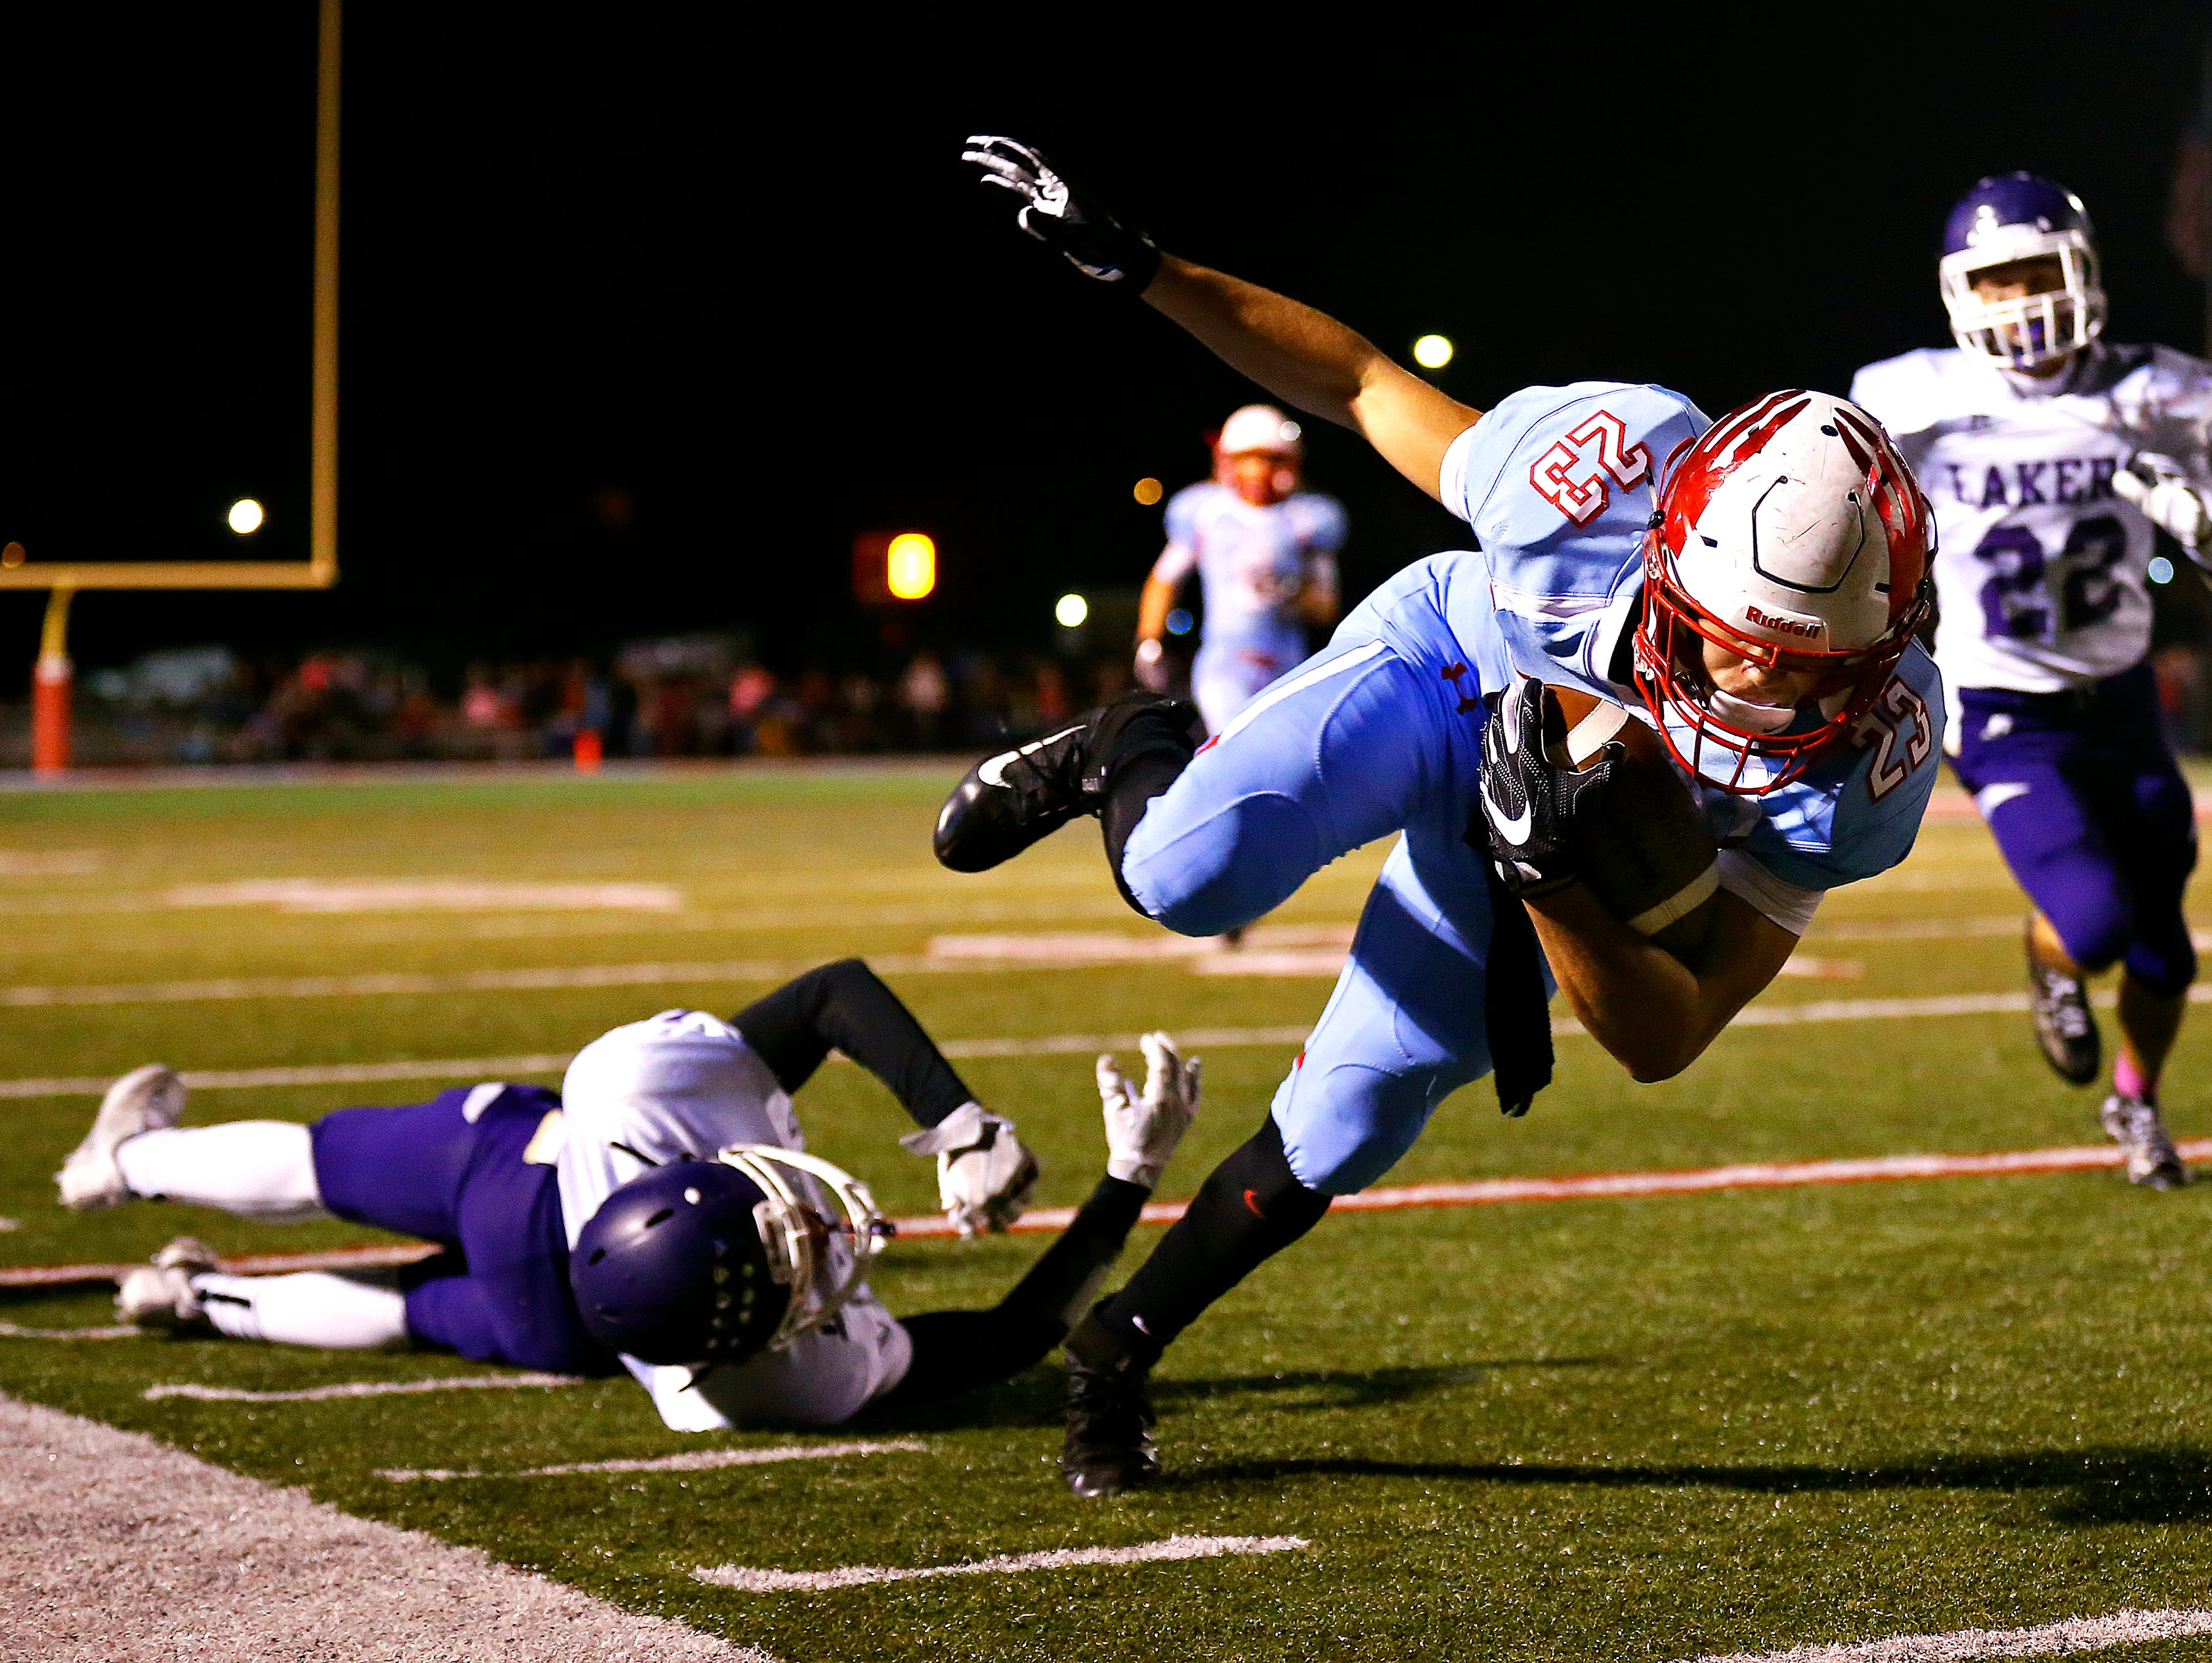 Glendale High School wide receiver Nader Leali (23) tries to maintain his balance after a hit by Lakers defensive back Matt Lawson during second quarter action of the game between Glendale High School and Camdenton High School at Lowe Stadium in Springfield, Mo. on Oct. 14, 2016.